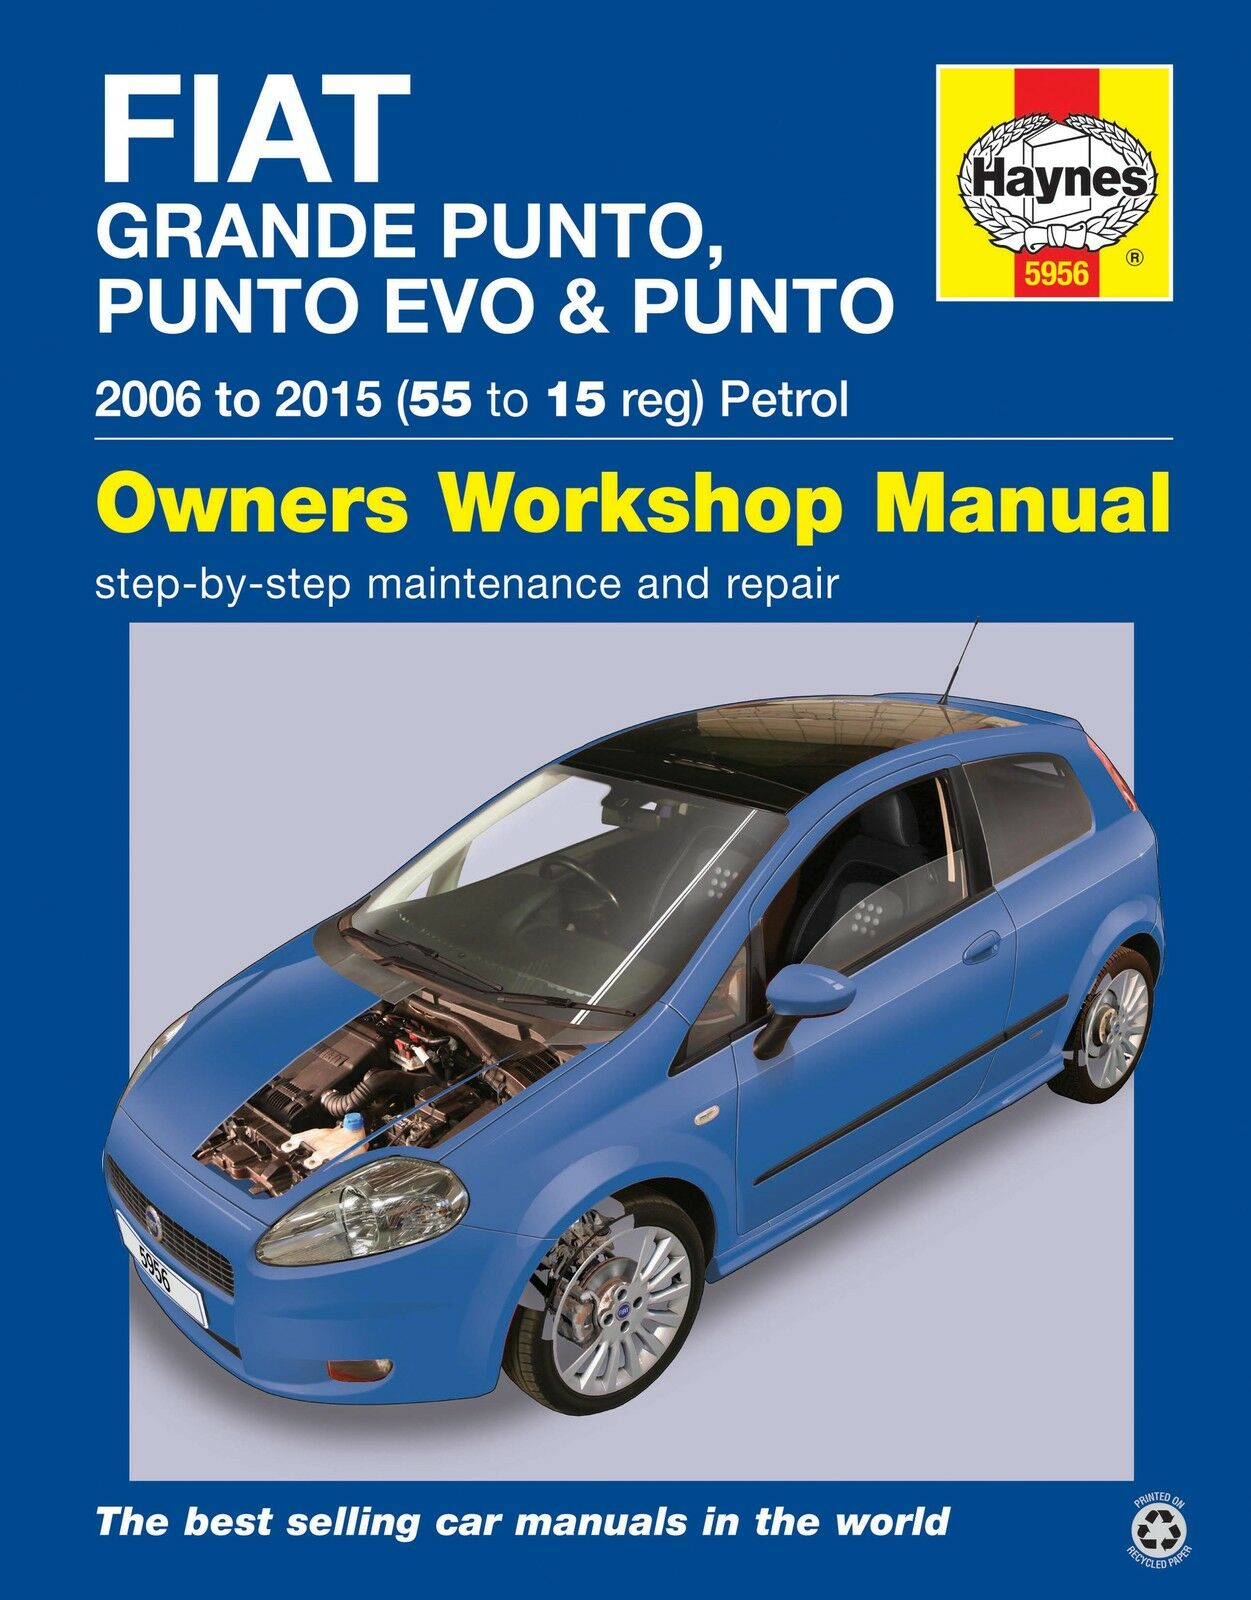 ... Repair Manual Haynes Manual Service Manual 2006-2015 1 of 1 See More